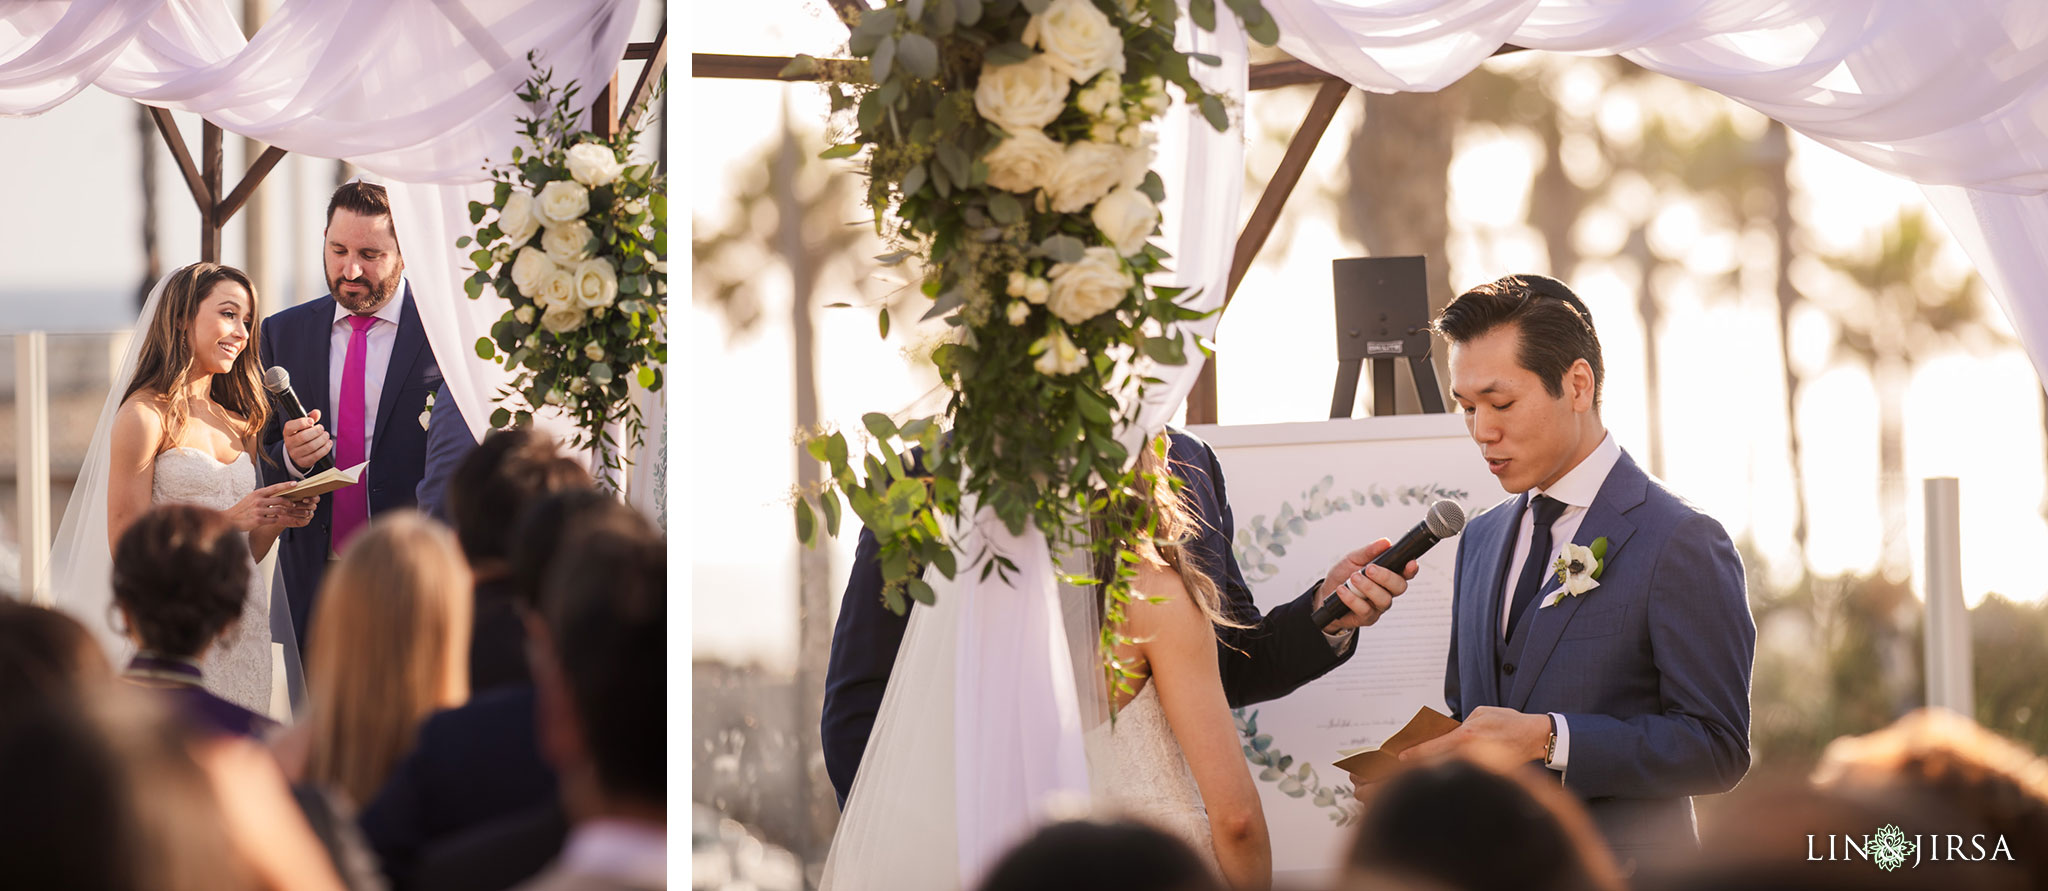 27 hyatt regency huntington beach wedding photography